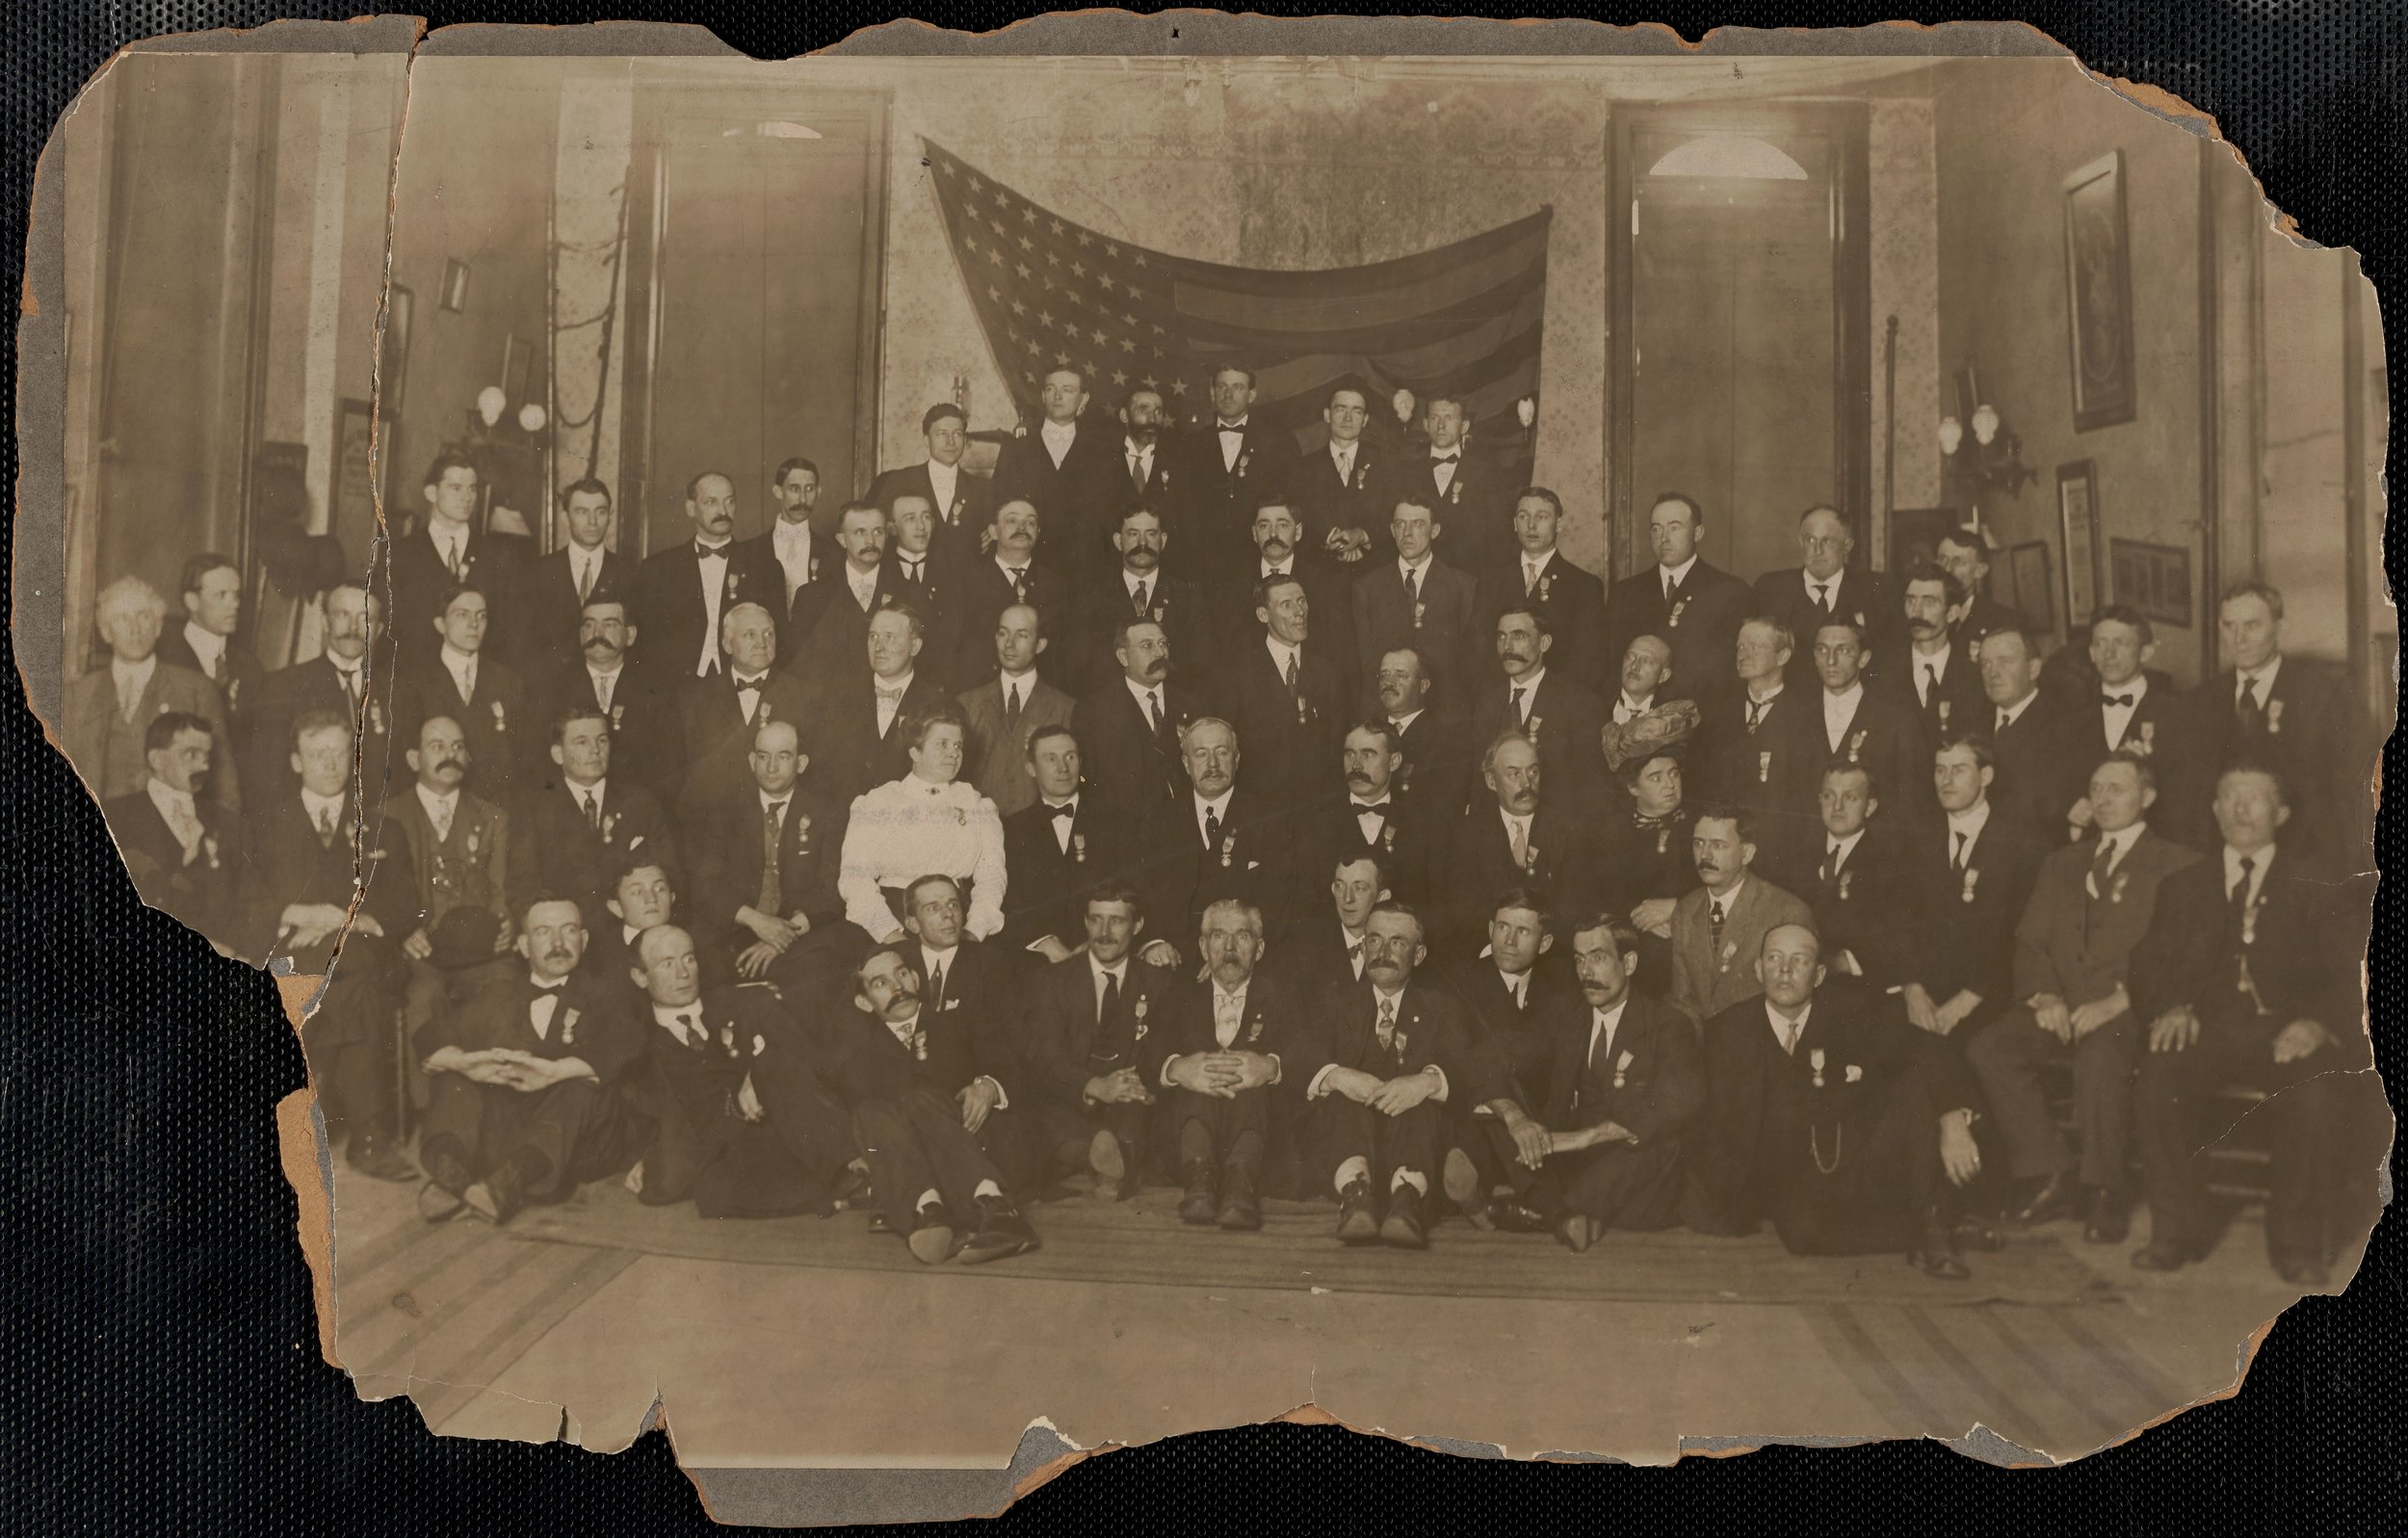 United Textile Workers of America Convention, 1910, New York, NY